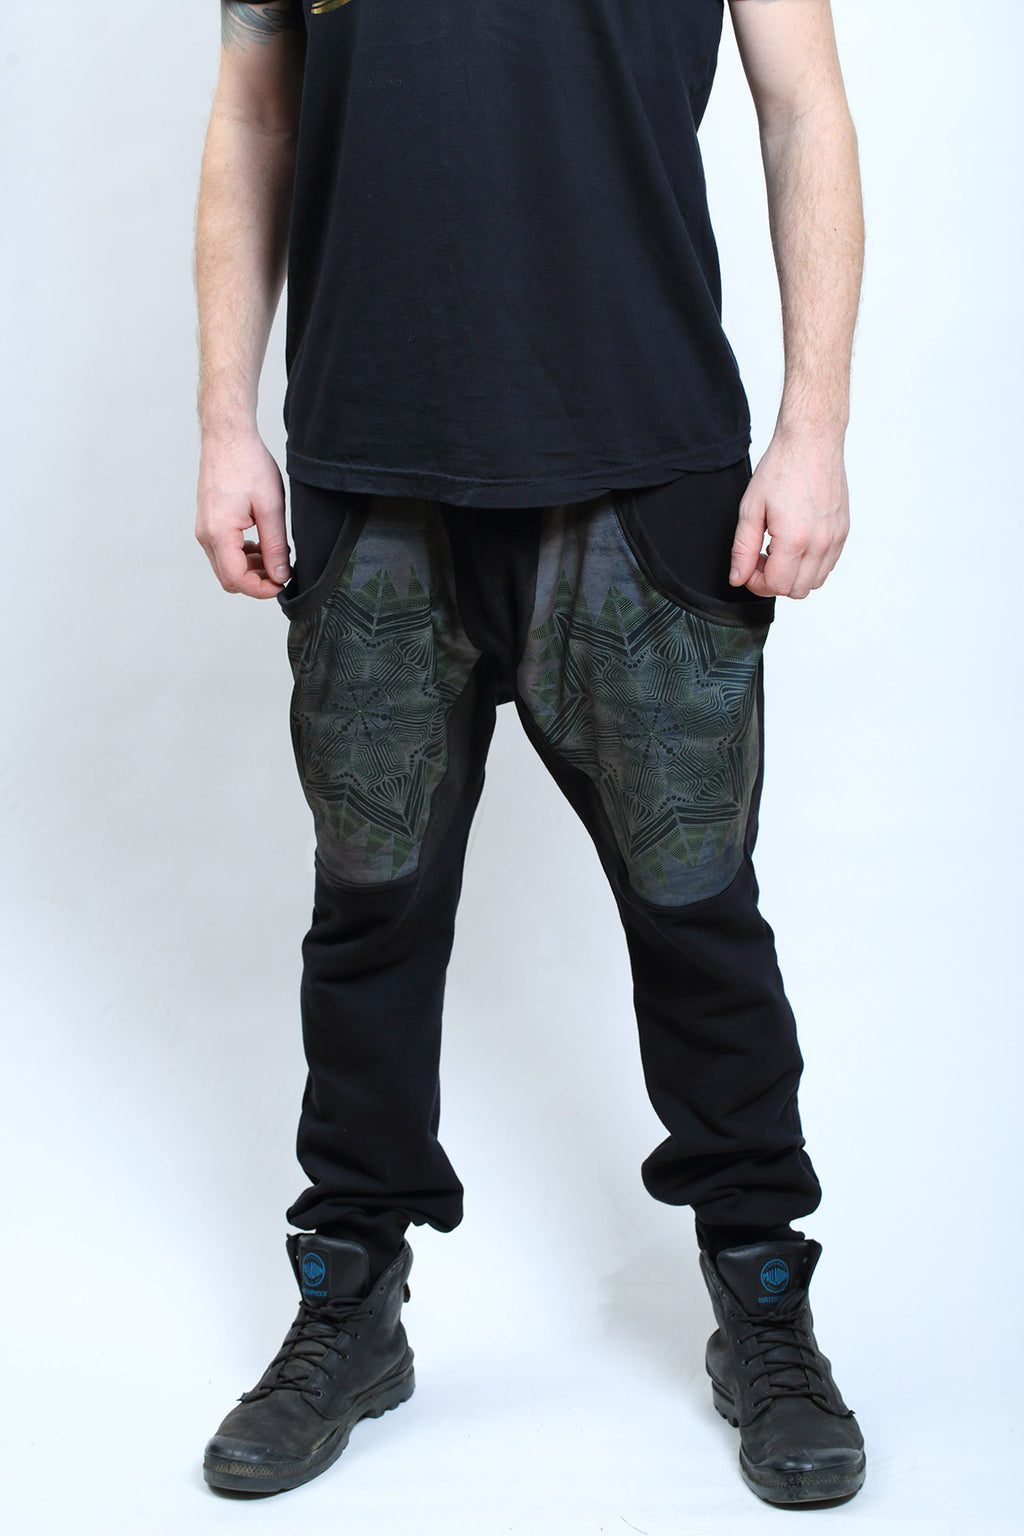 Illigent Apparel Men's Mandalien Joggers Lower Front Body